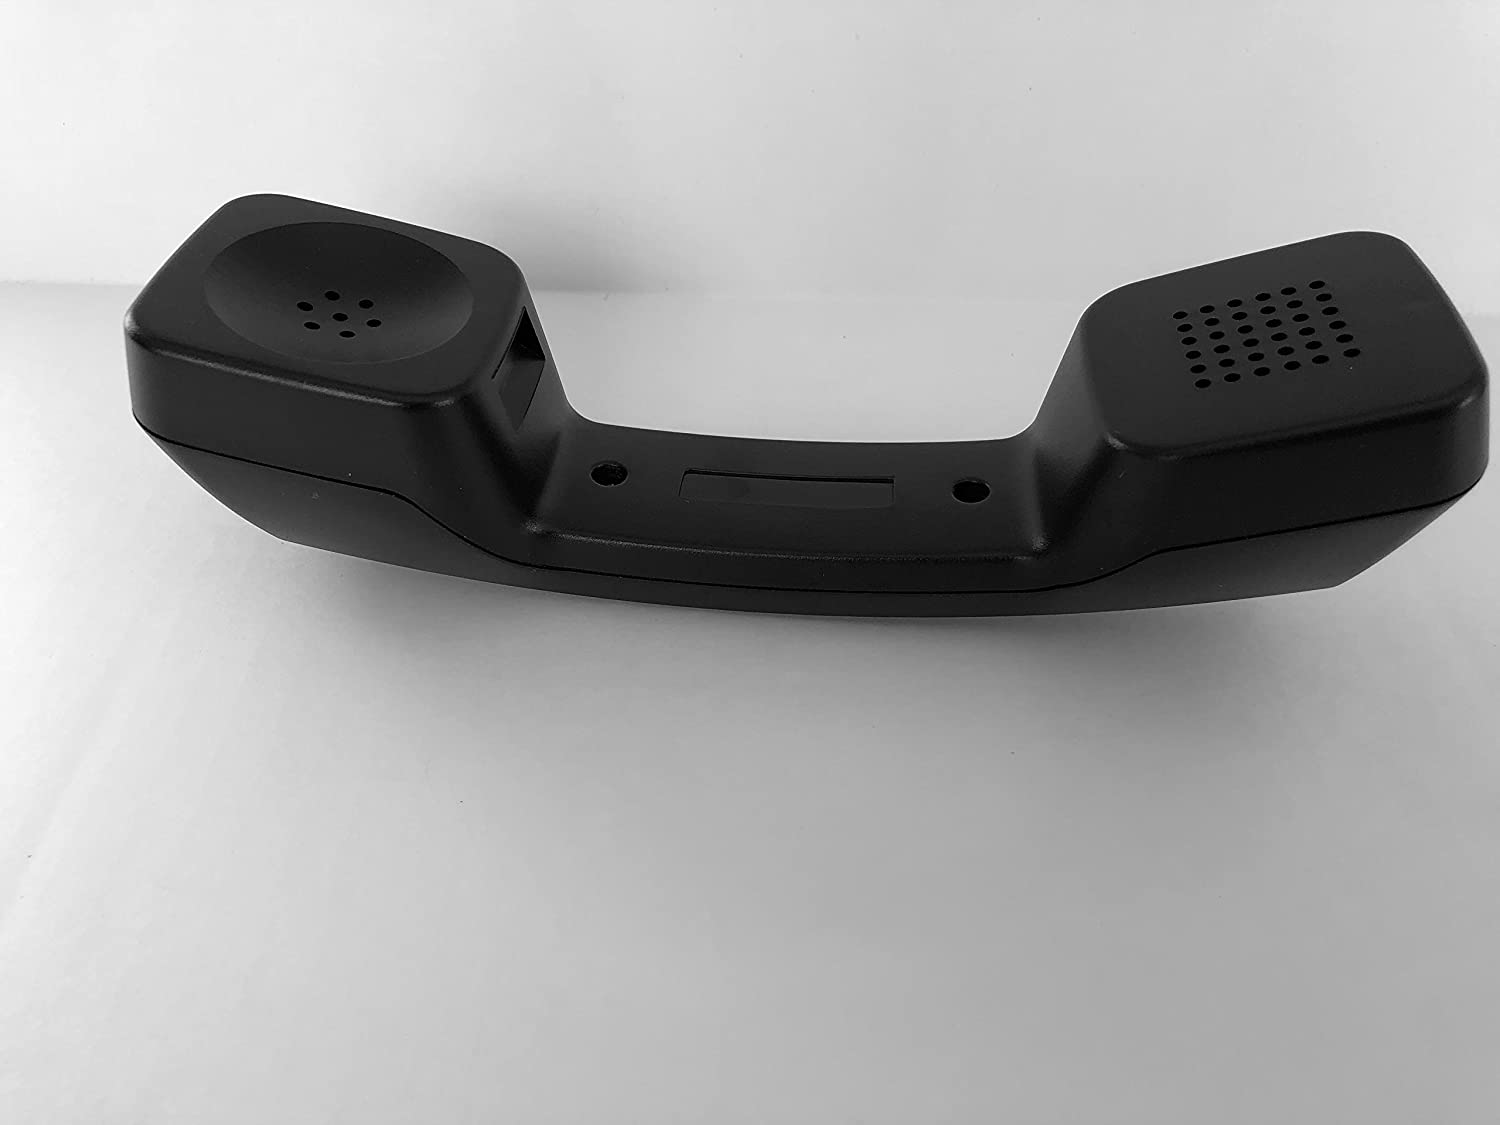 The VoIP Lounge Replacement K-Style Handset Includes 9 Cord KX-T7636 KX-T7633 KX-T7630 for Panasonic KX-T7600 Series Phone KX-T7625